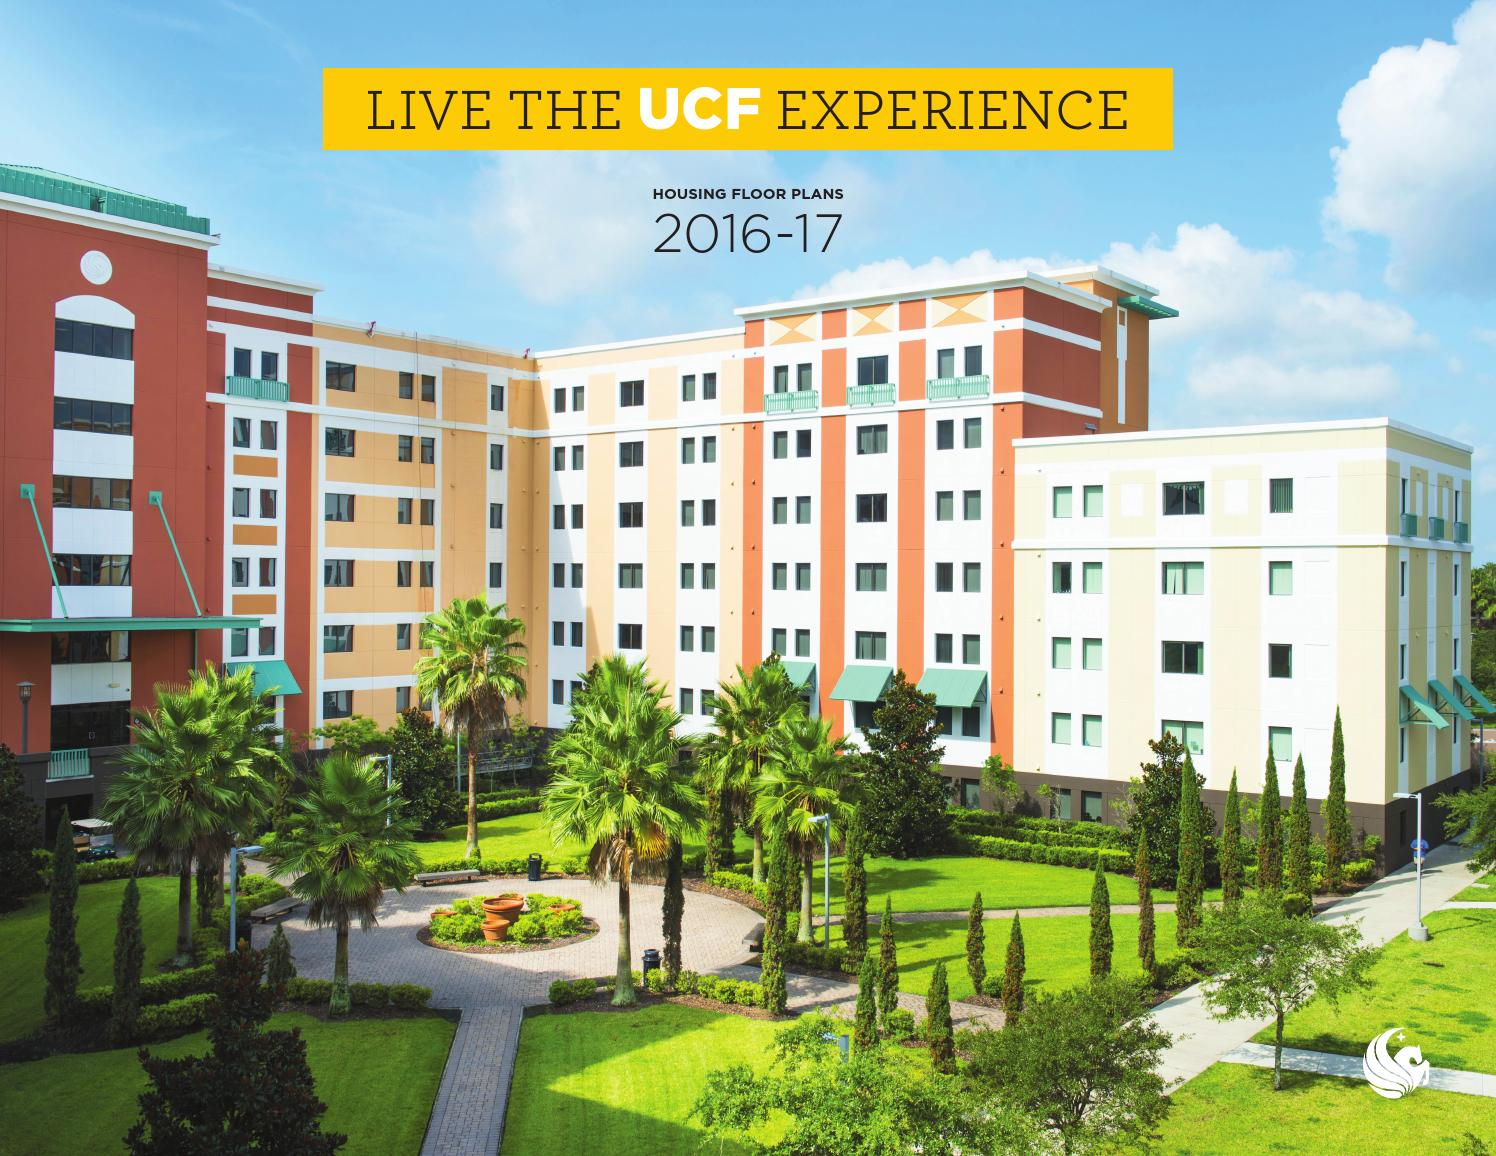 Ucf Housing Floorplans 2016 17 By University Of Central